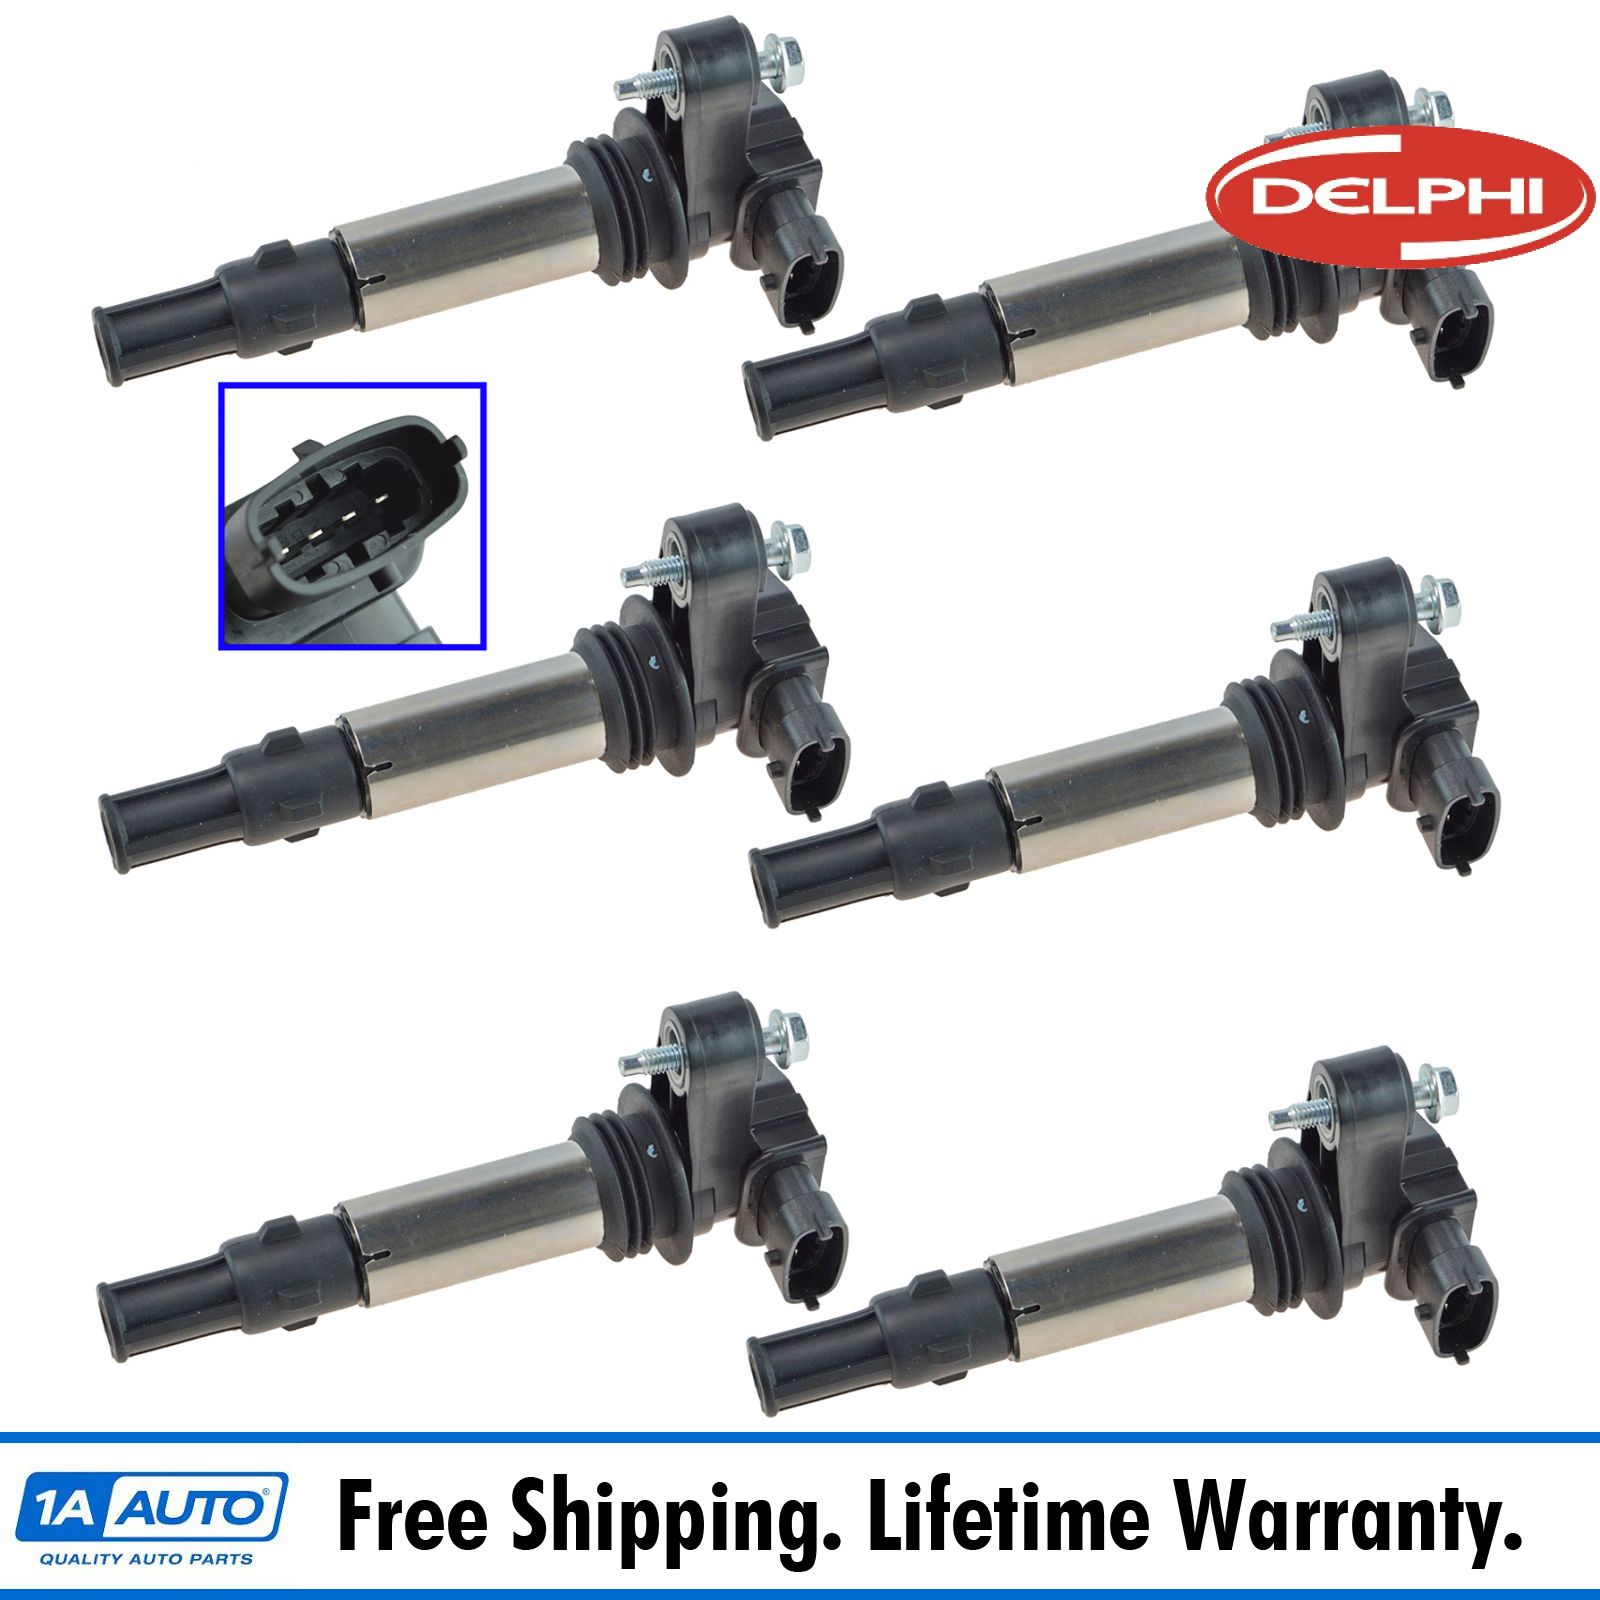 Delphi GN10309 Ignition Coils COP Set Of 6 For Buick